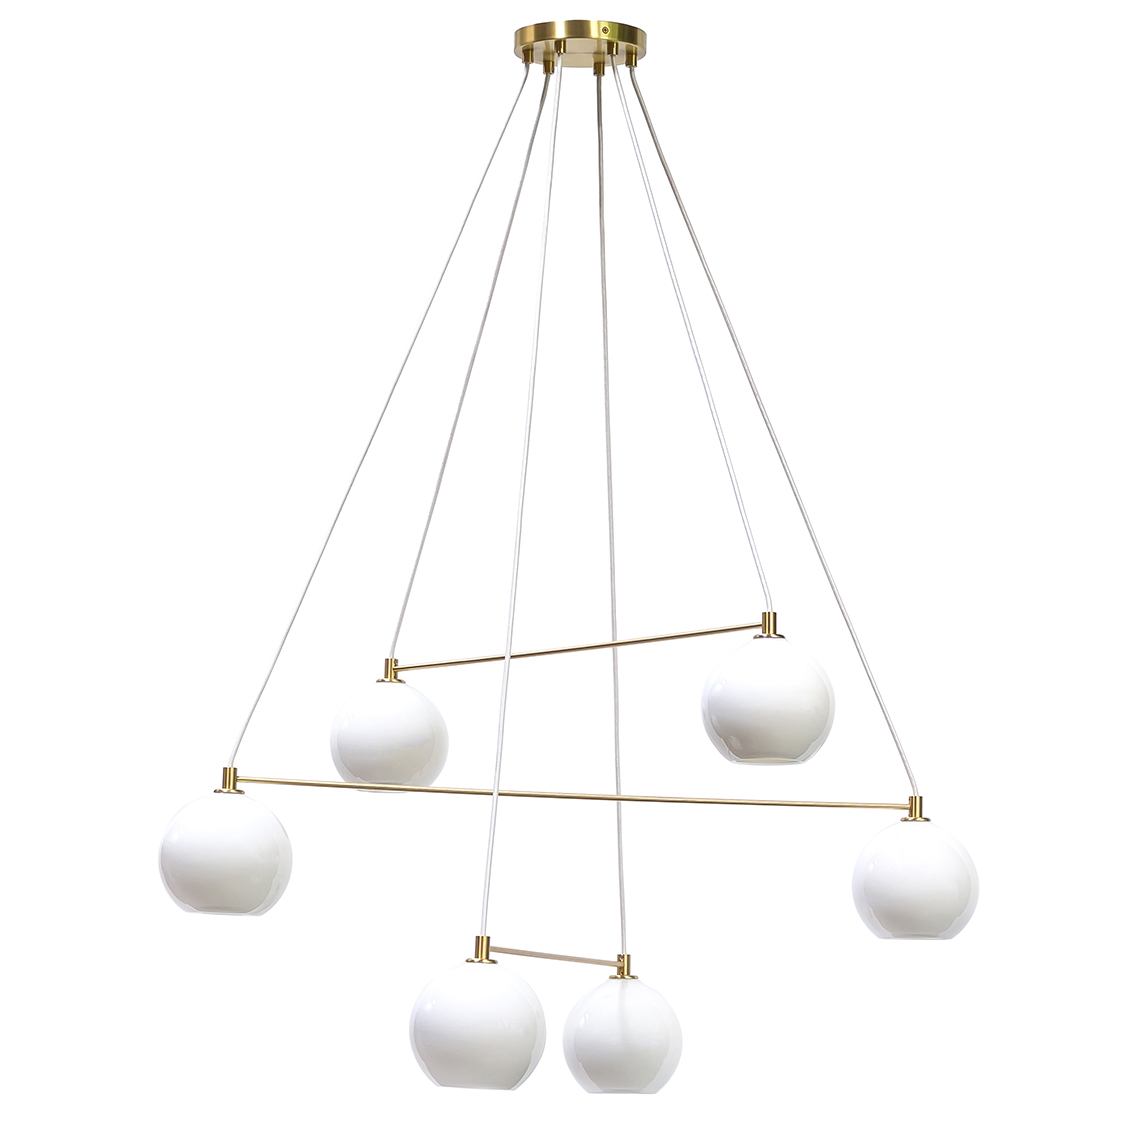 6 light enamel white linea chandelier